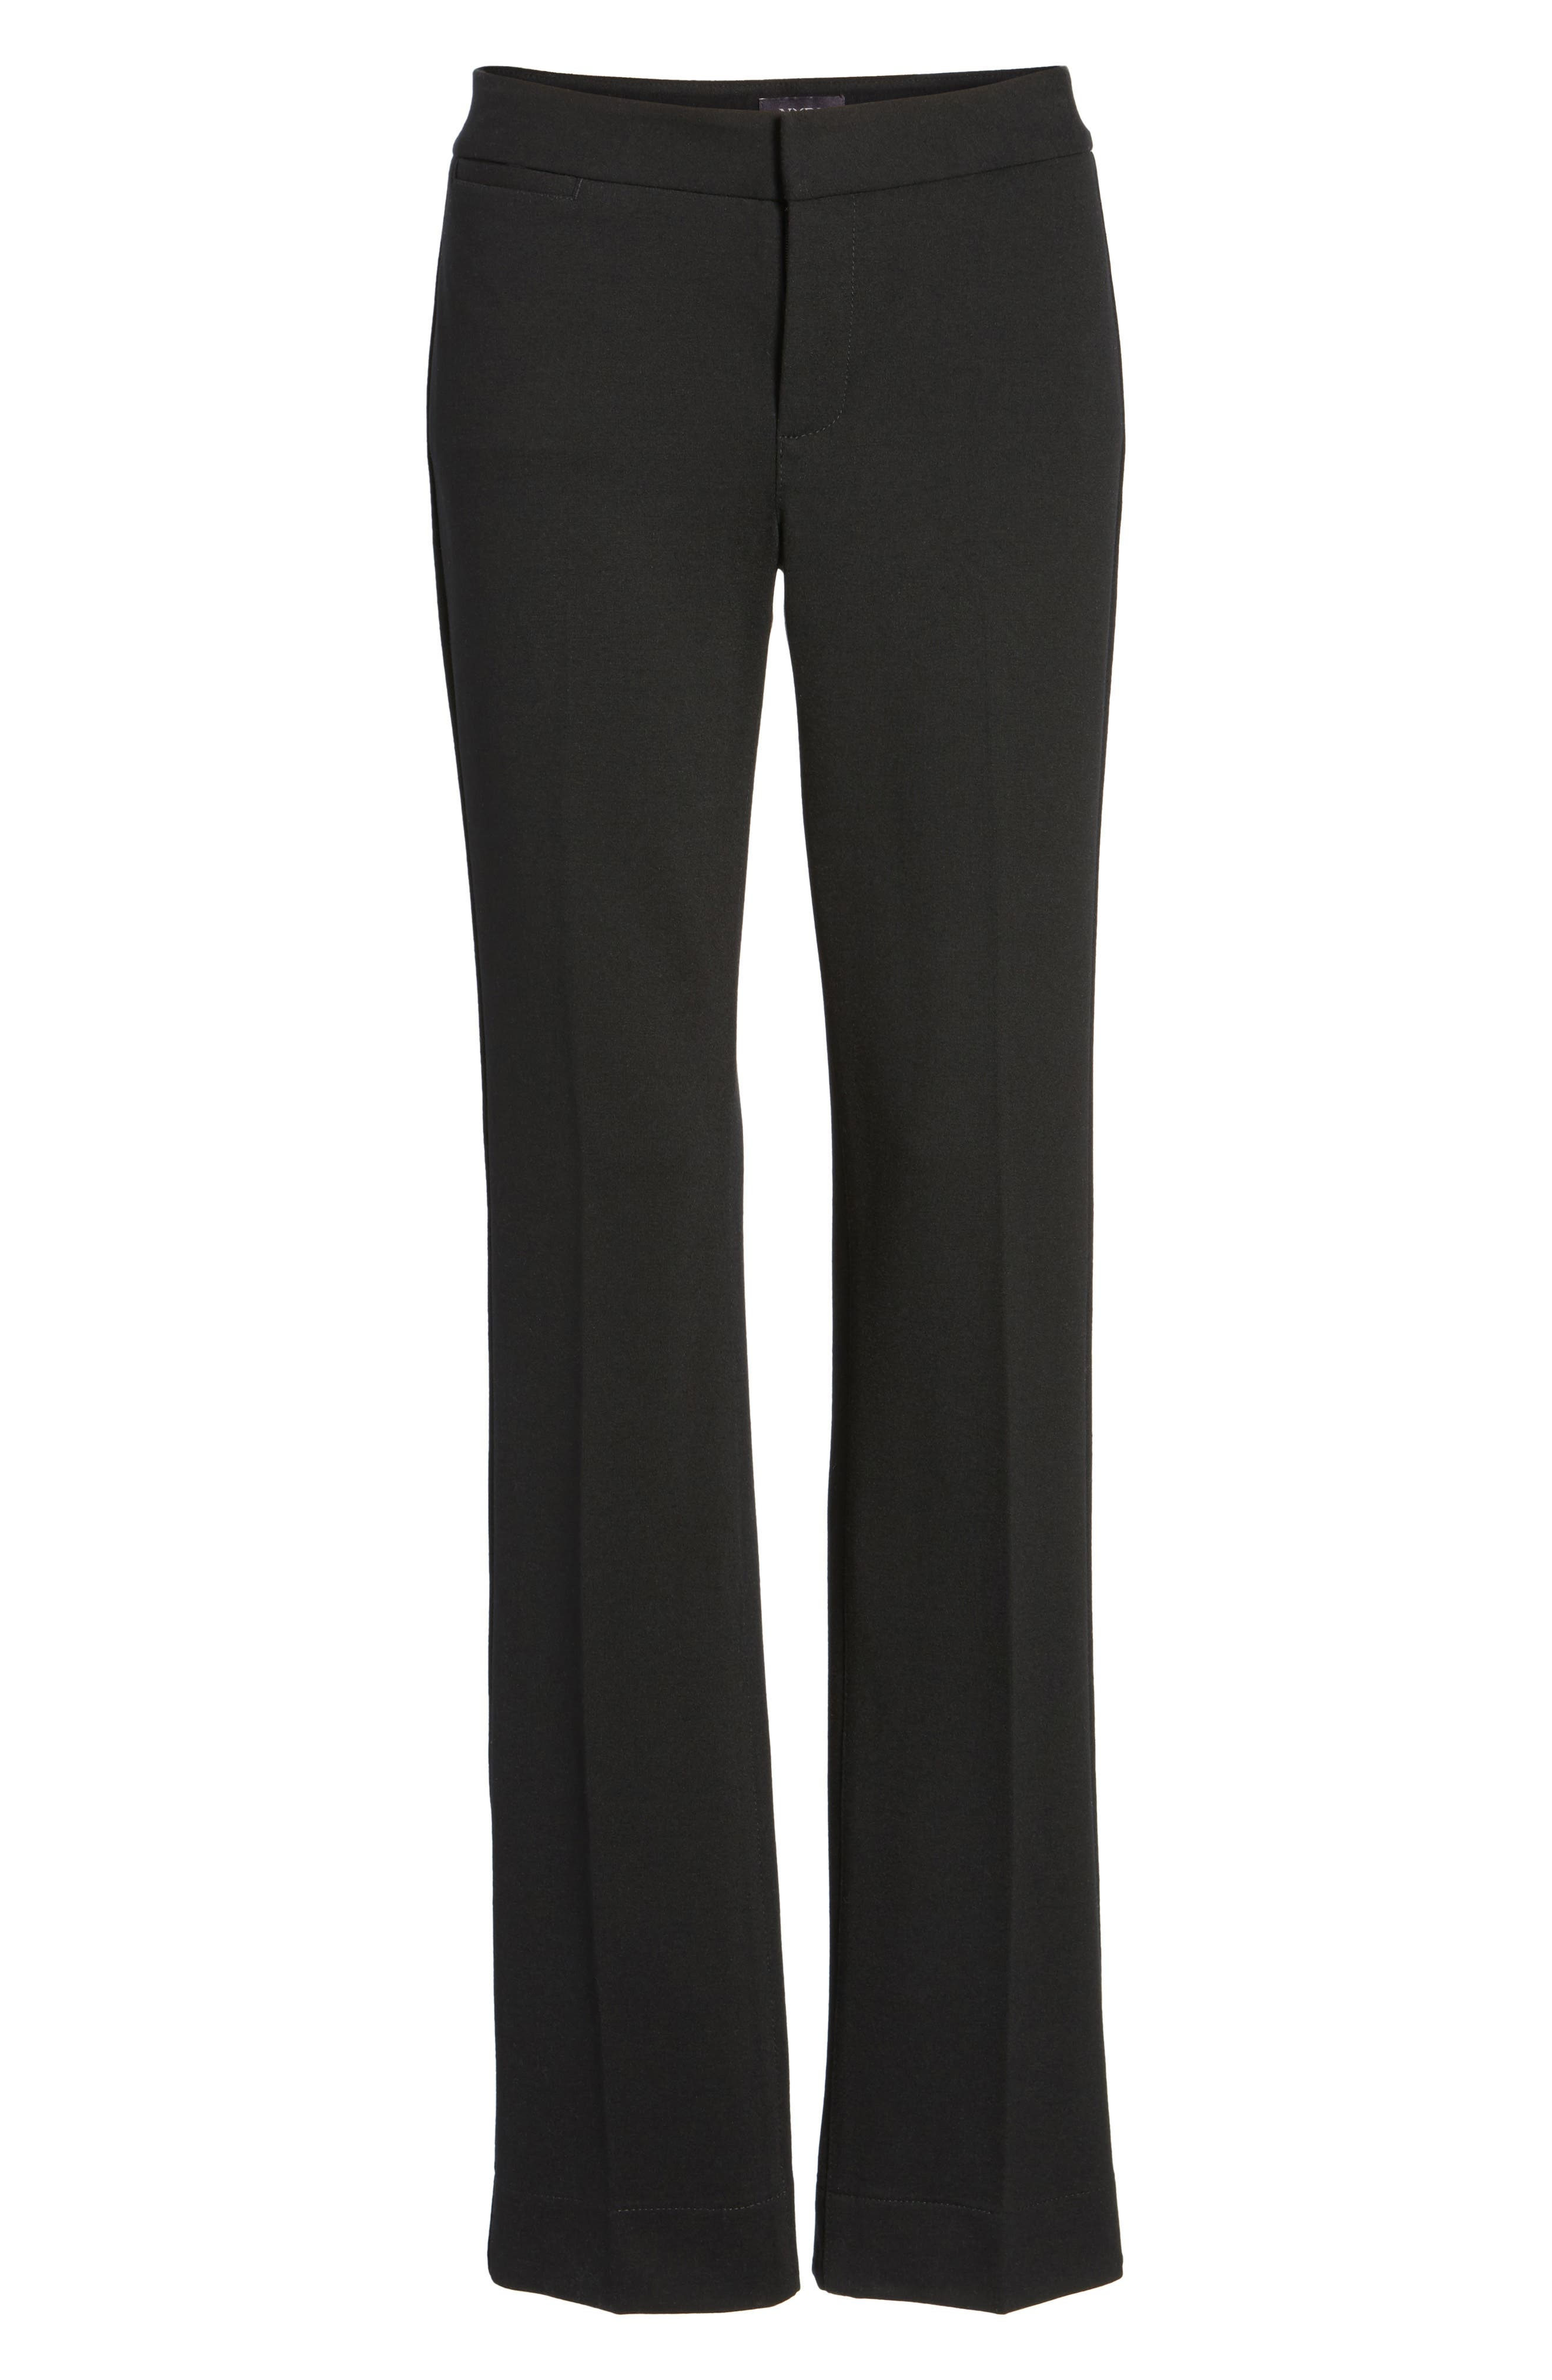 Stretch Knit Trousers,                             Alternate thumbnail 7, color,                             BLACK